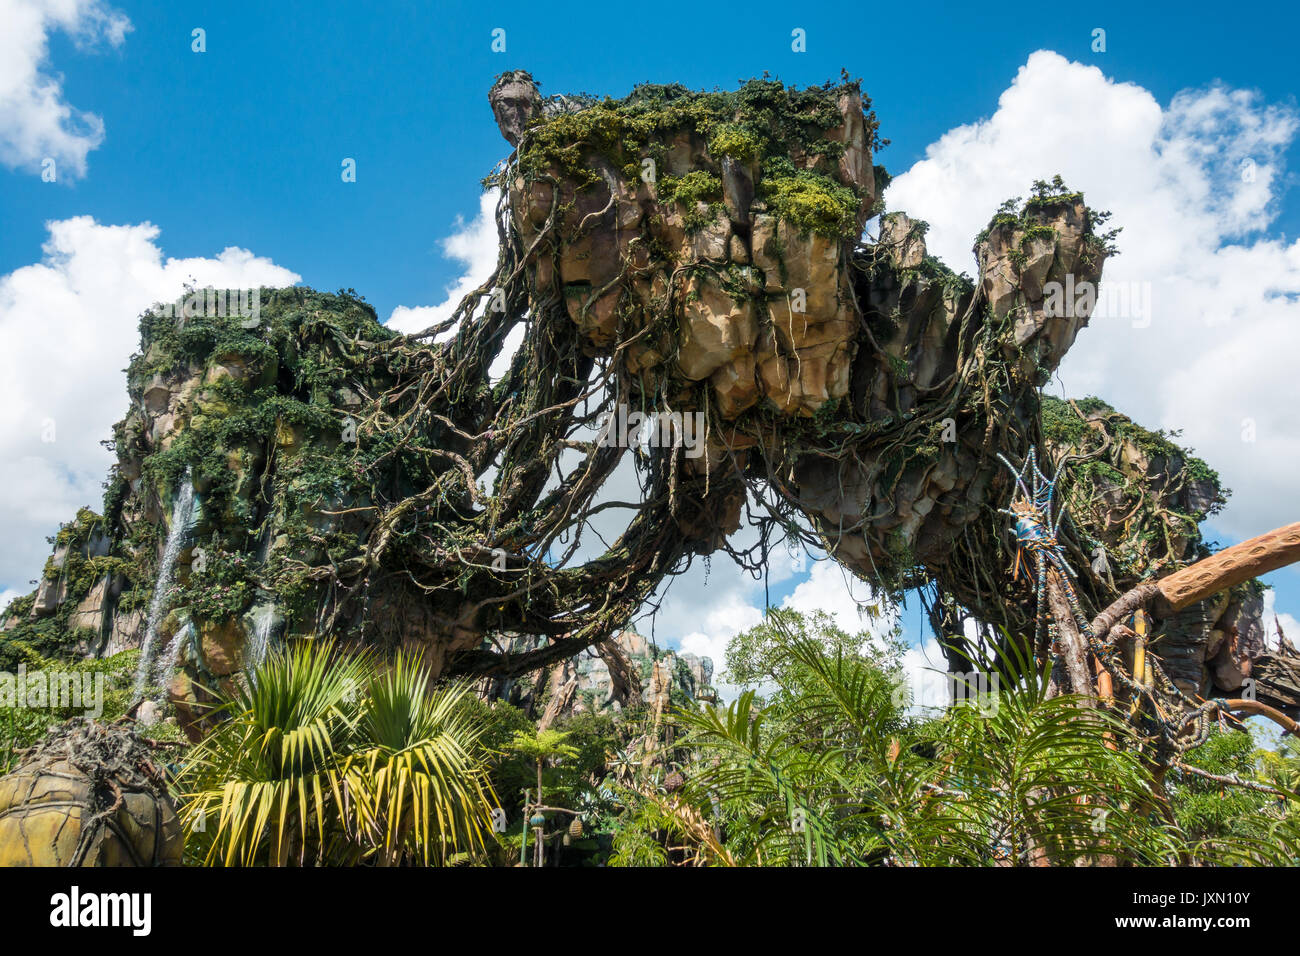 Floating Mountains in Pandora, Avatar Land, Animal Kingdom, Walt Disney World, Orlando, Florida. - Stock Image